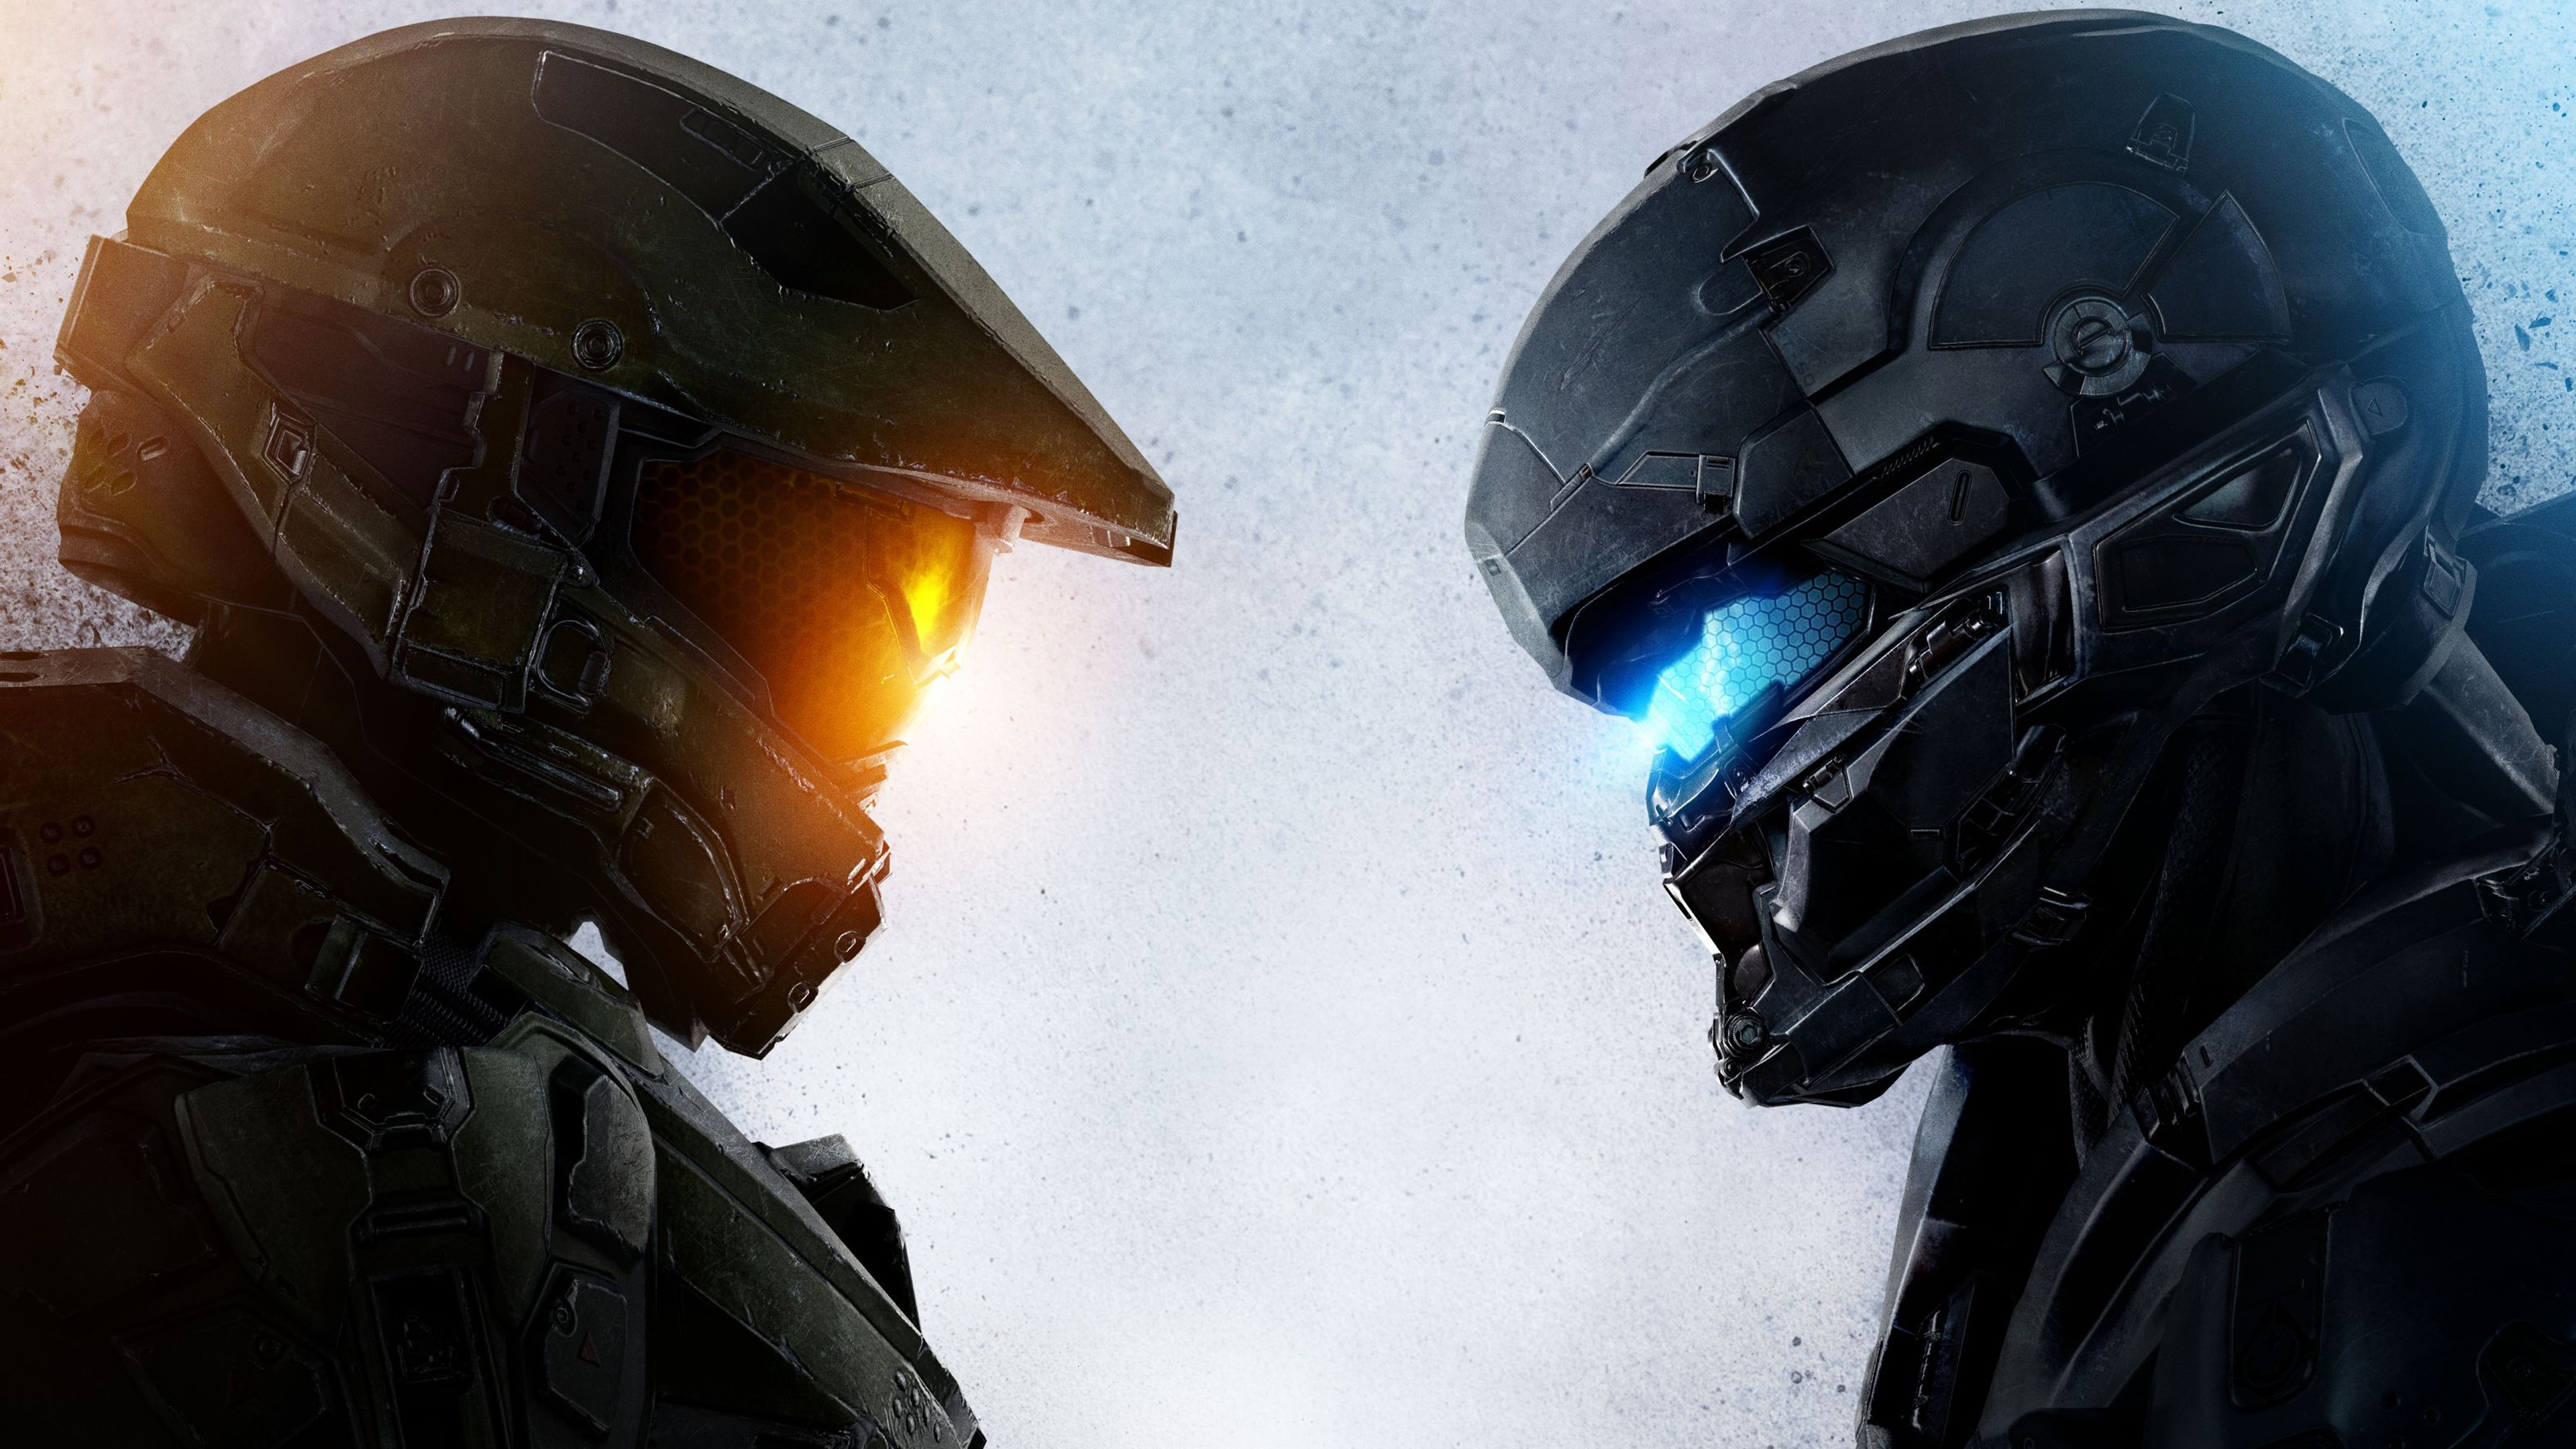 halo wallpaper hd high quality pixelstalk net